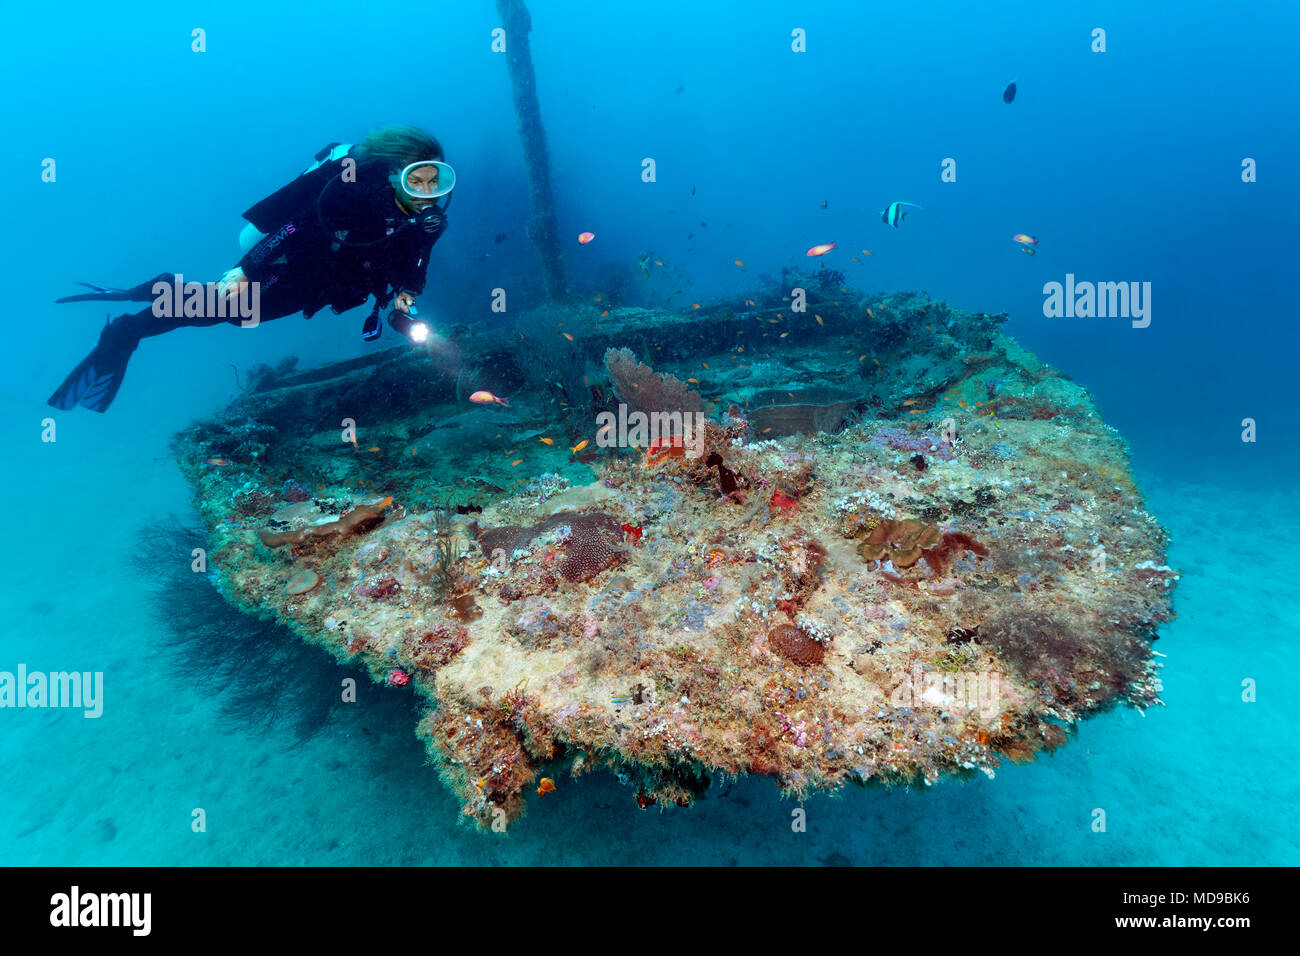 Divers with Lamp Viewed Coral-covered Bow, Fesdu Wreck, Fesdu Island, Ari Atoll, Indian Ocean, Maldives - Stock Image